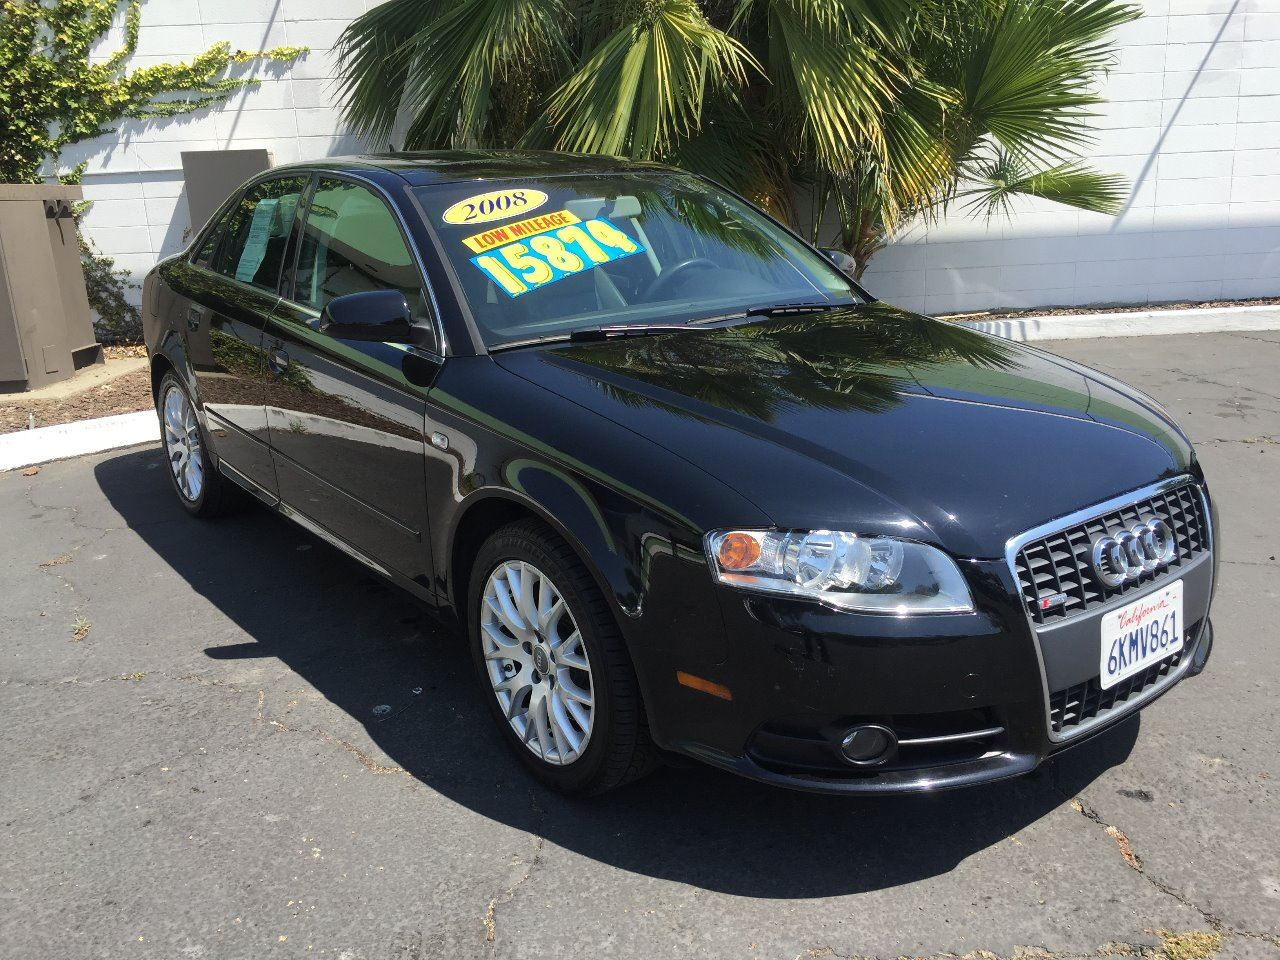 2008 AUDI A4 20T SPECIAL ED black german engineering at its best this a4 black pristine vehicl